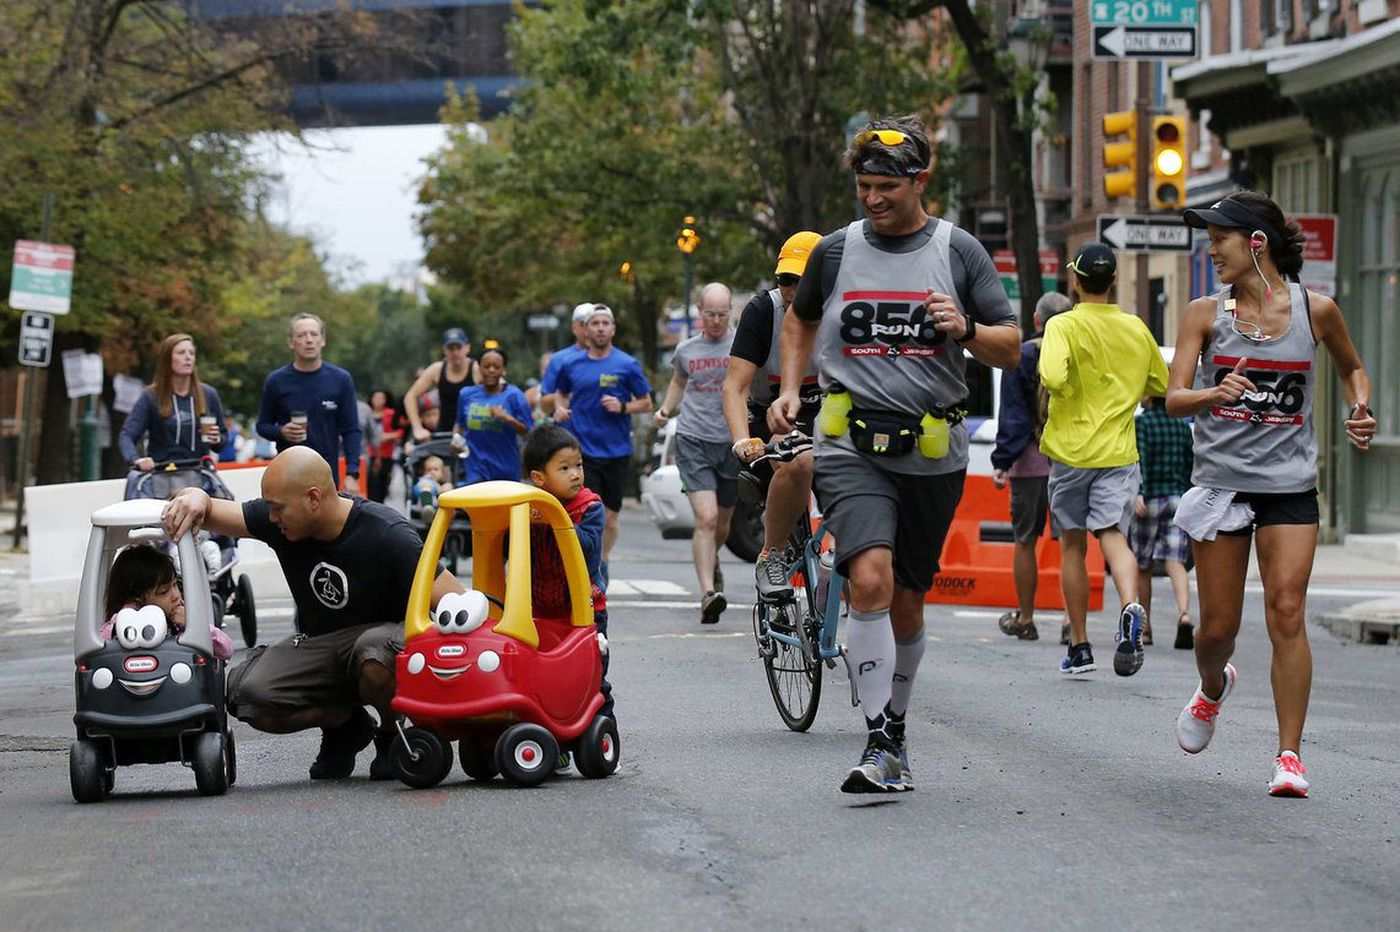 Philly Free Streets: No traffic for 7 miles from N. Philly to Old City on Oct. 28